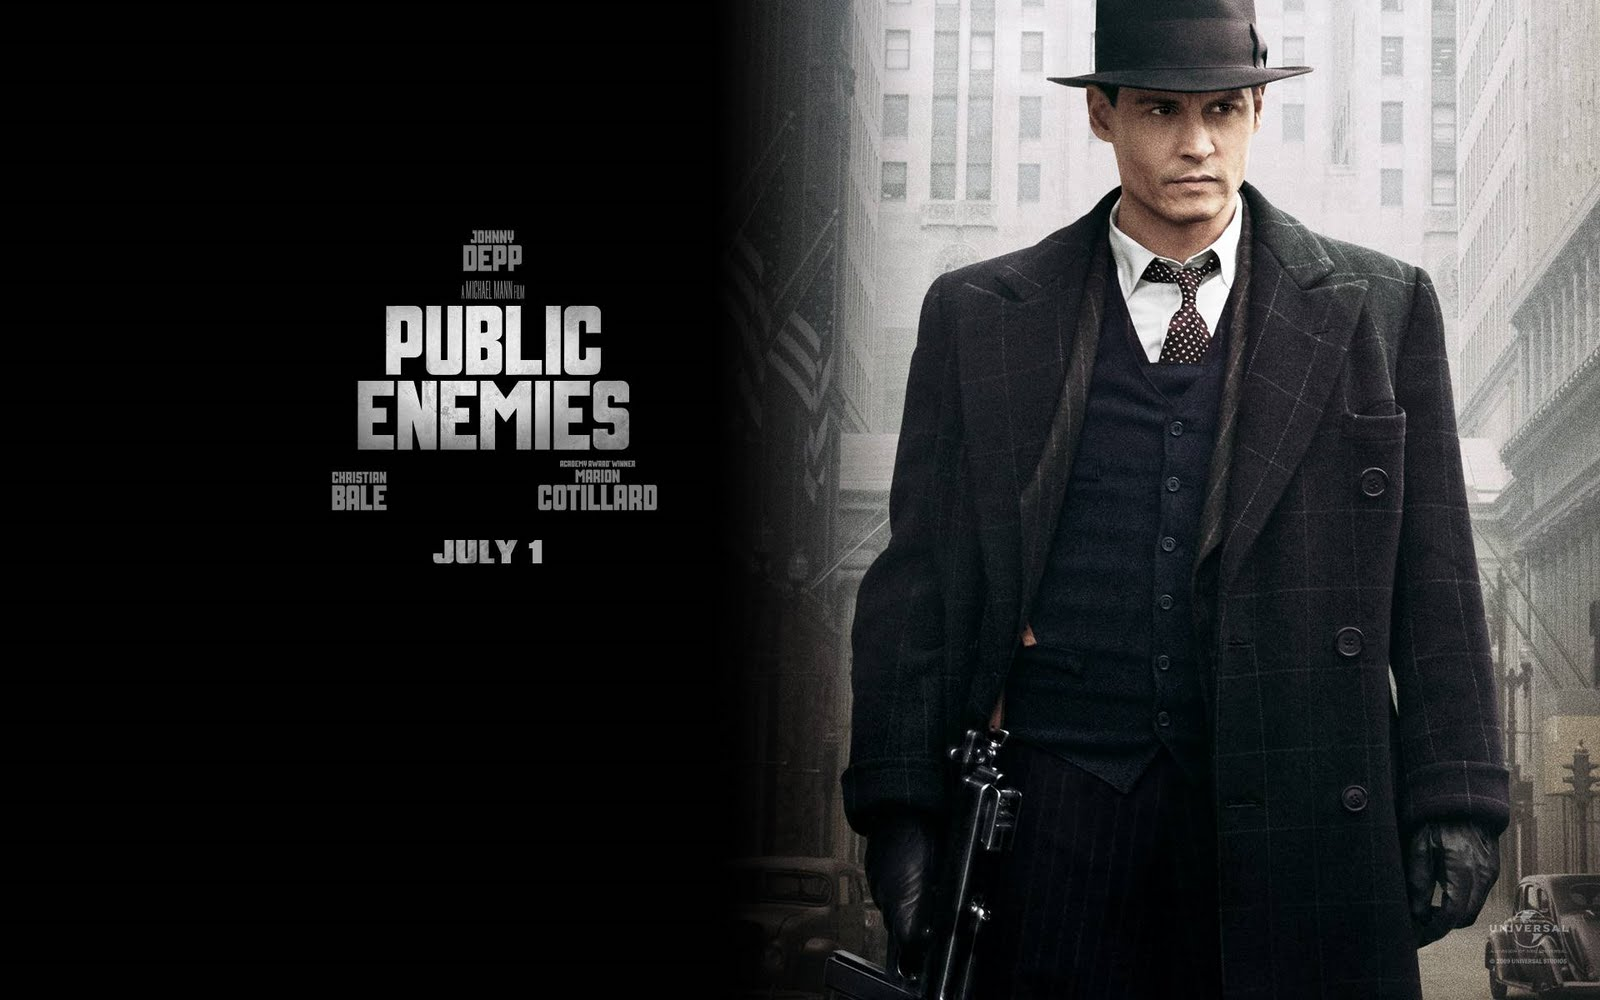 How Many Stars For That Public Enemies 2009 Movie Review